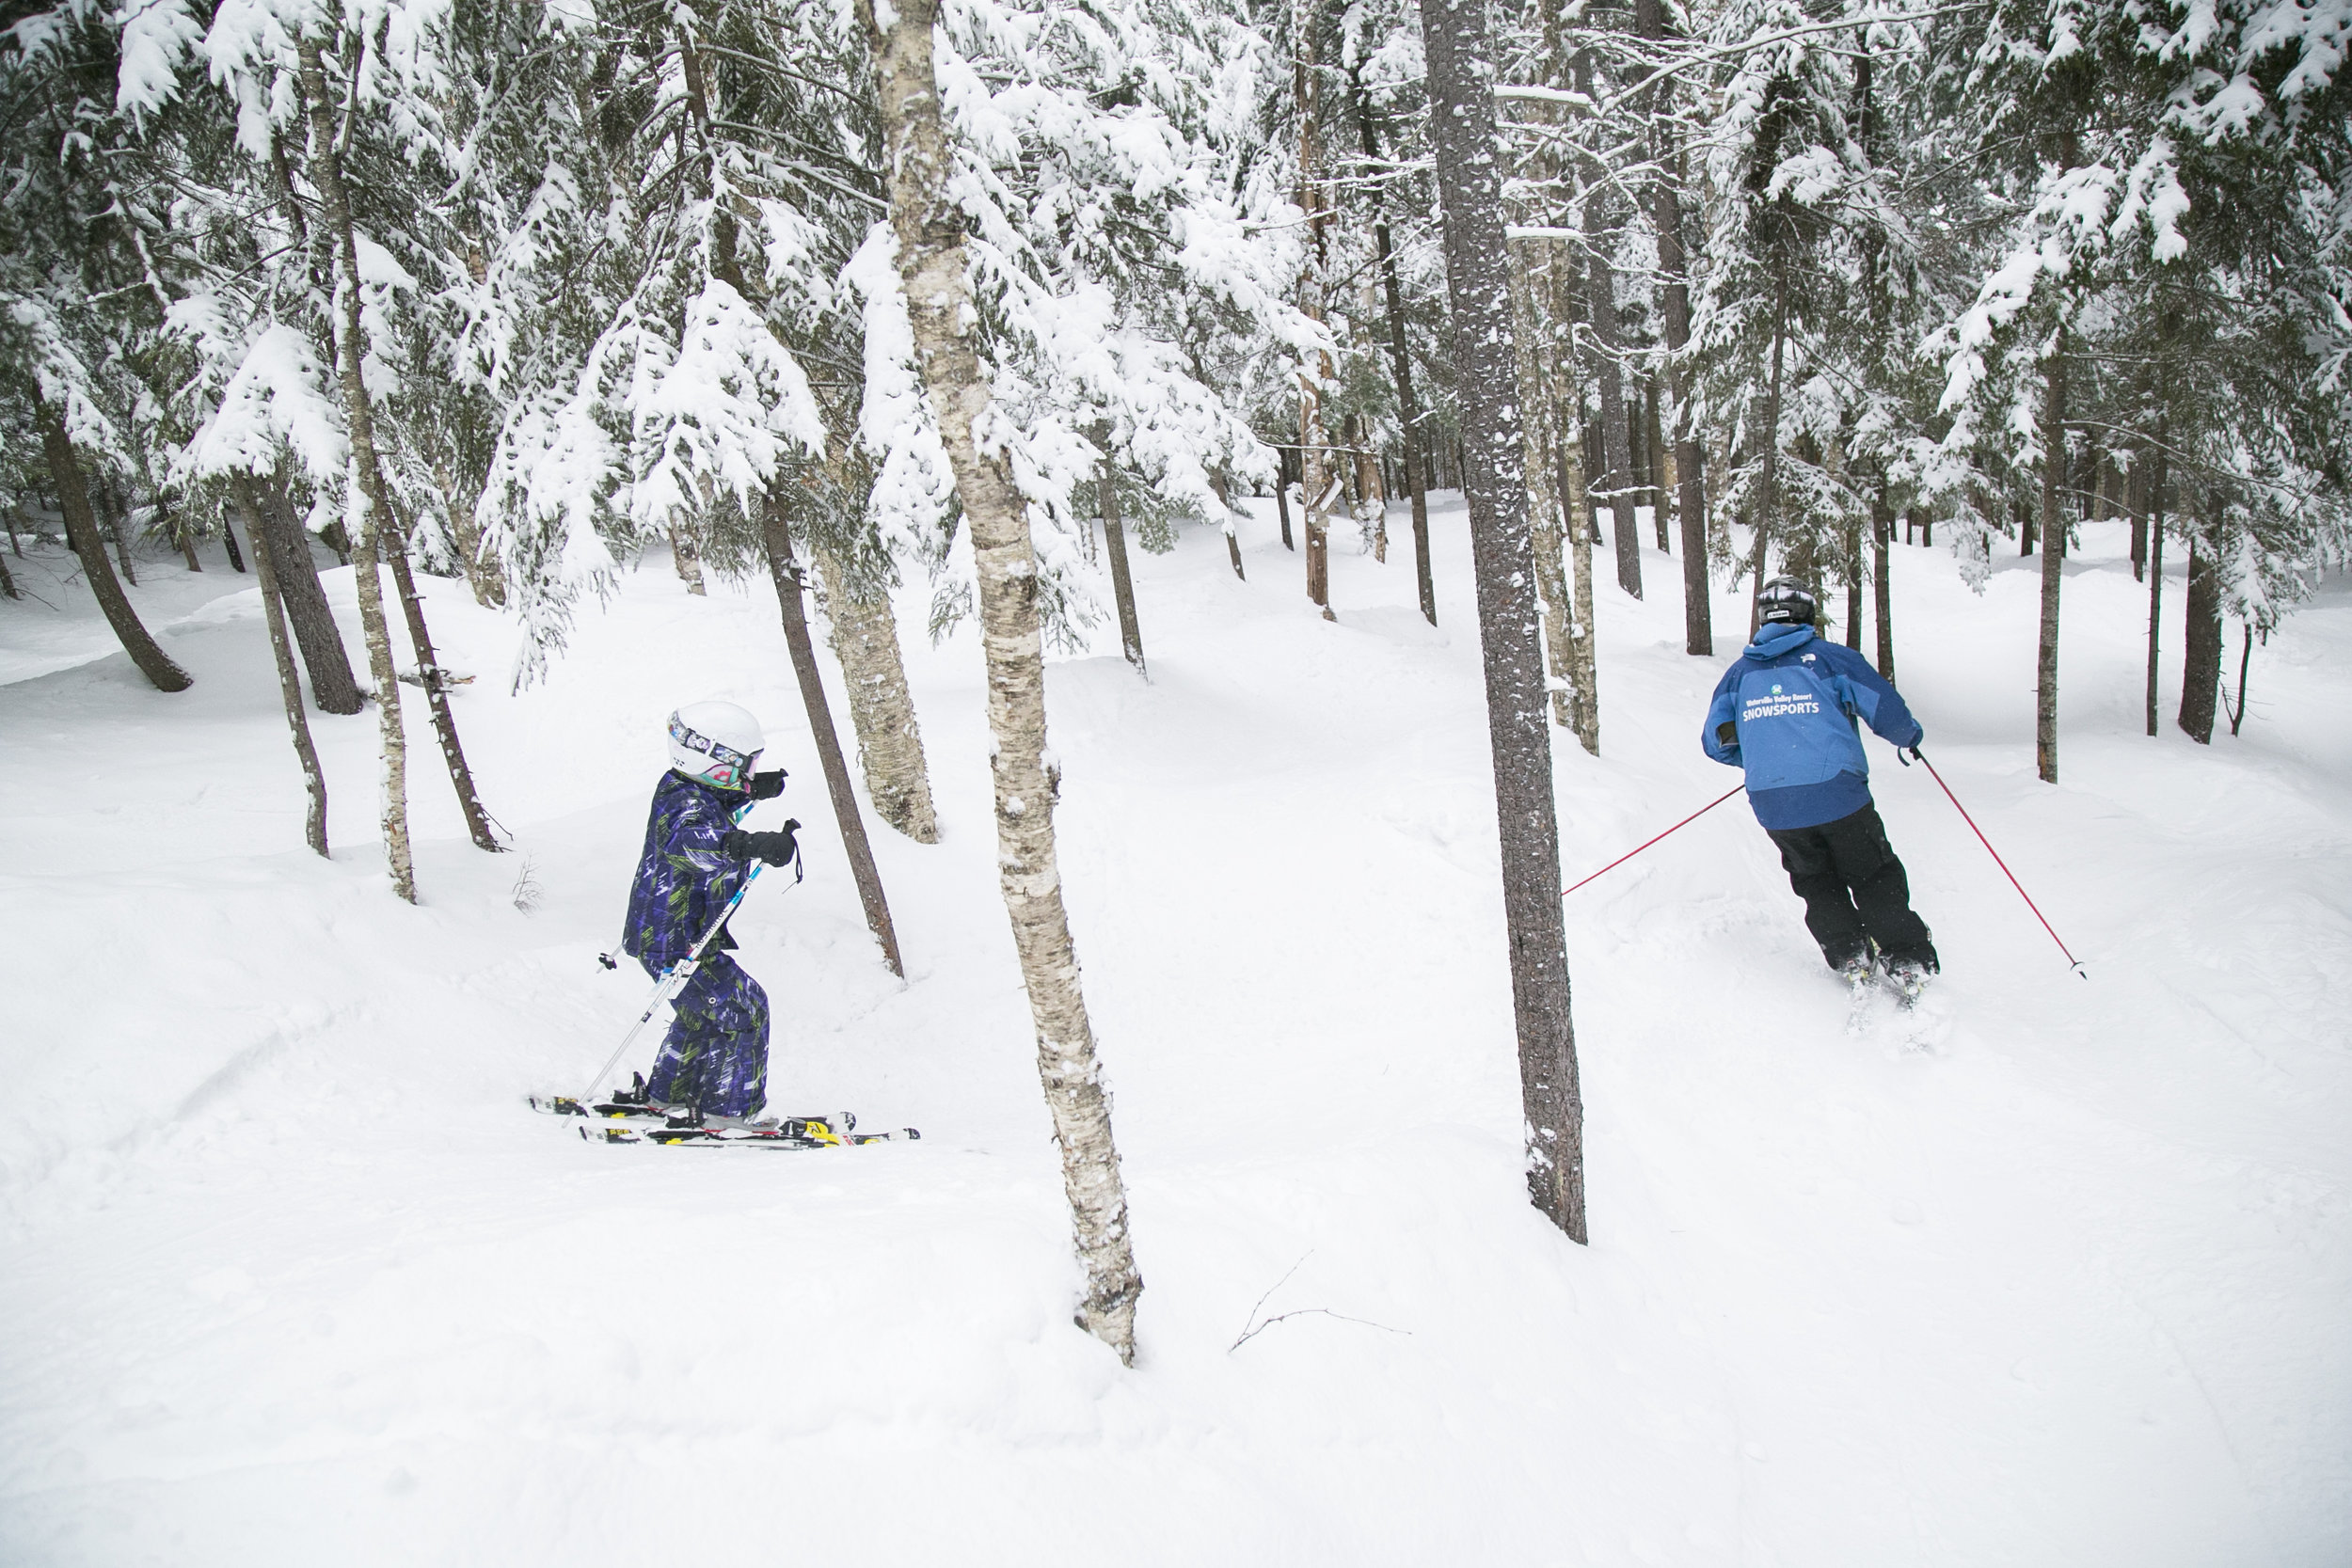 An instructor leading a student through the Sugar Shack Glades